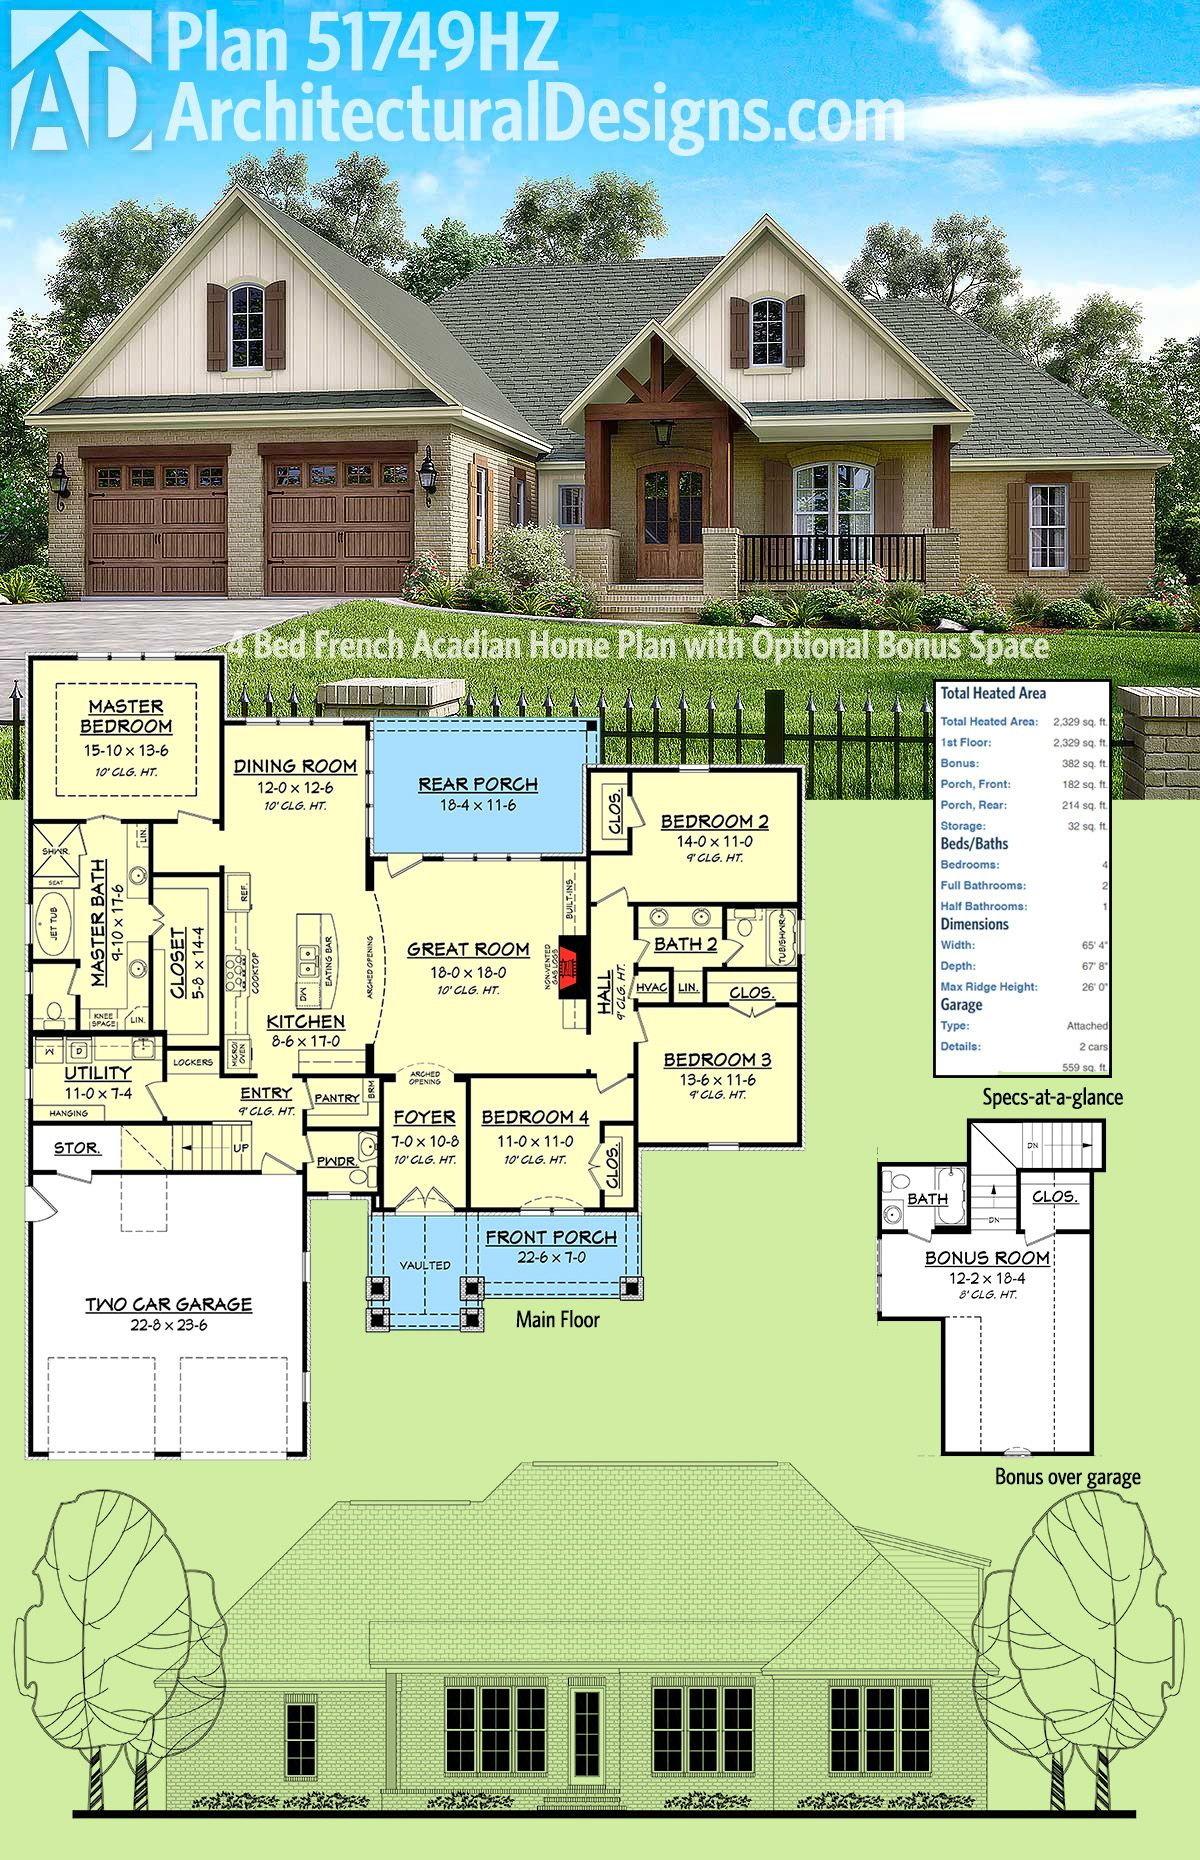 Plan 51749hz four bed french acadian home plan with for Acadian home designs